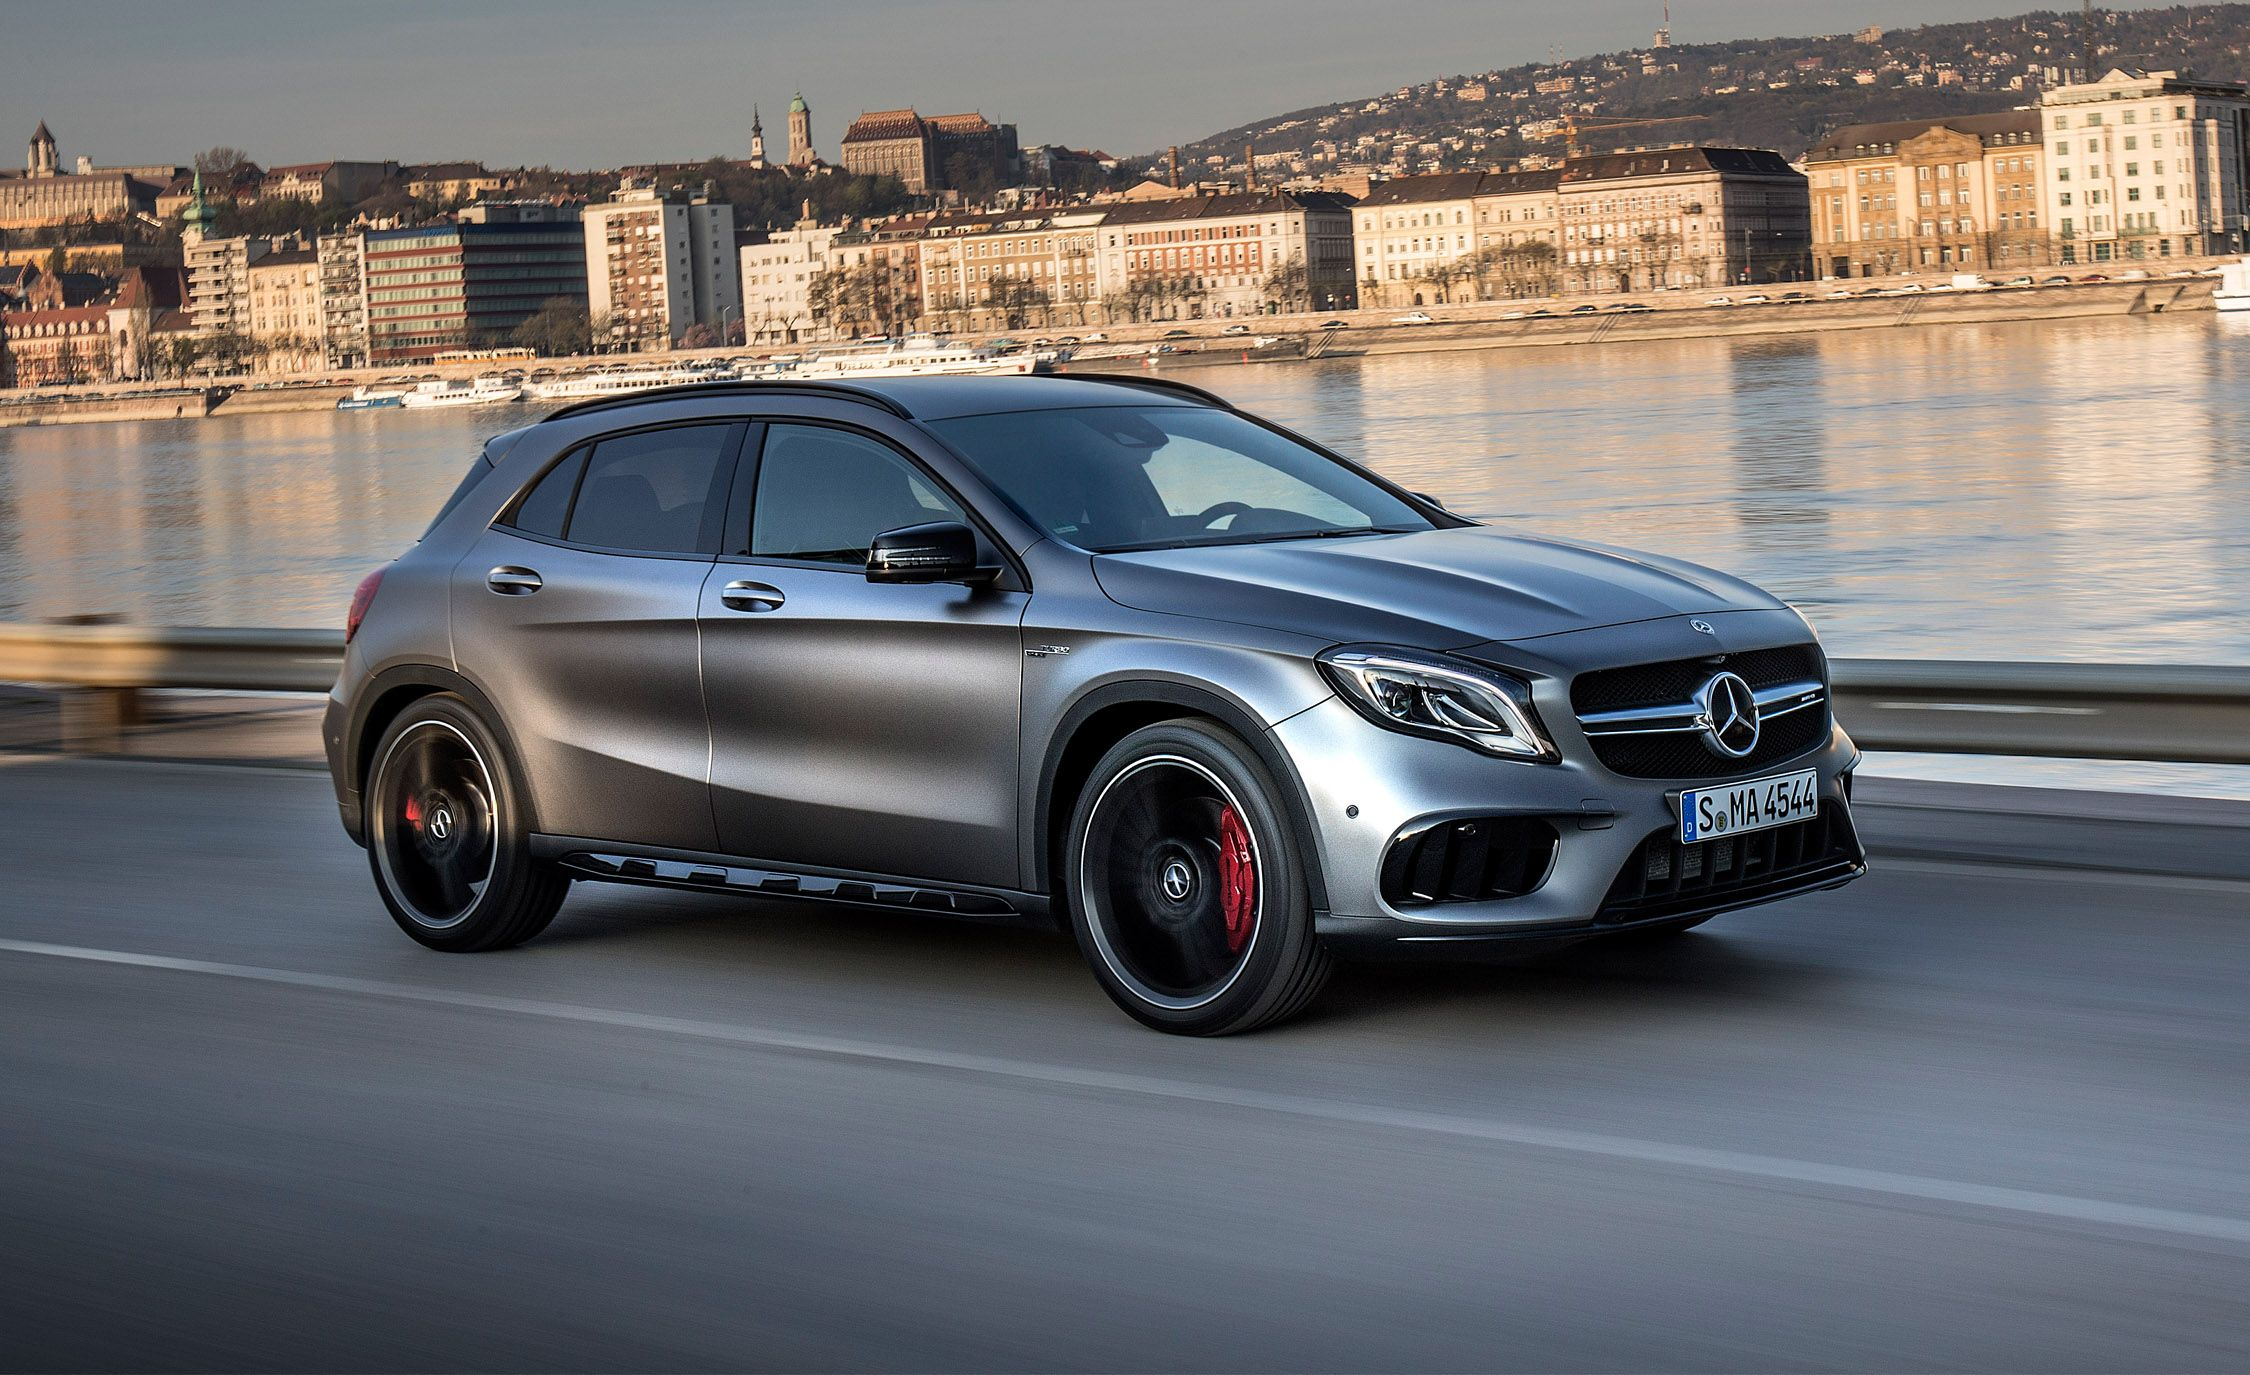 Mercedes Benz Sls Amg Review >> 2017 Mercedes-AMG CLA45 and 2018 GLA45 First Drive | Review | Car and Driver